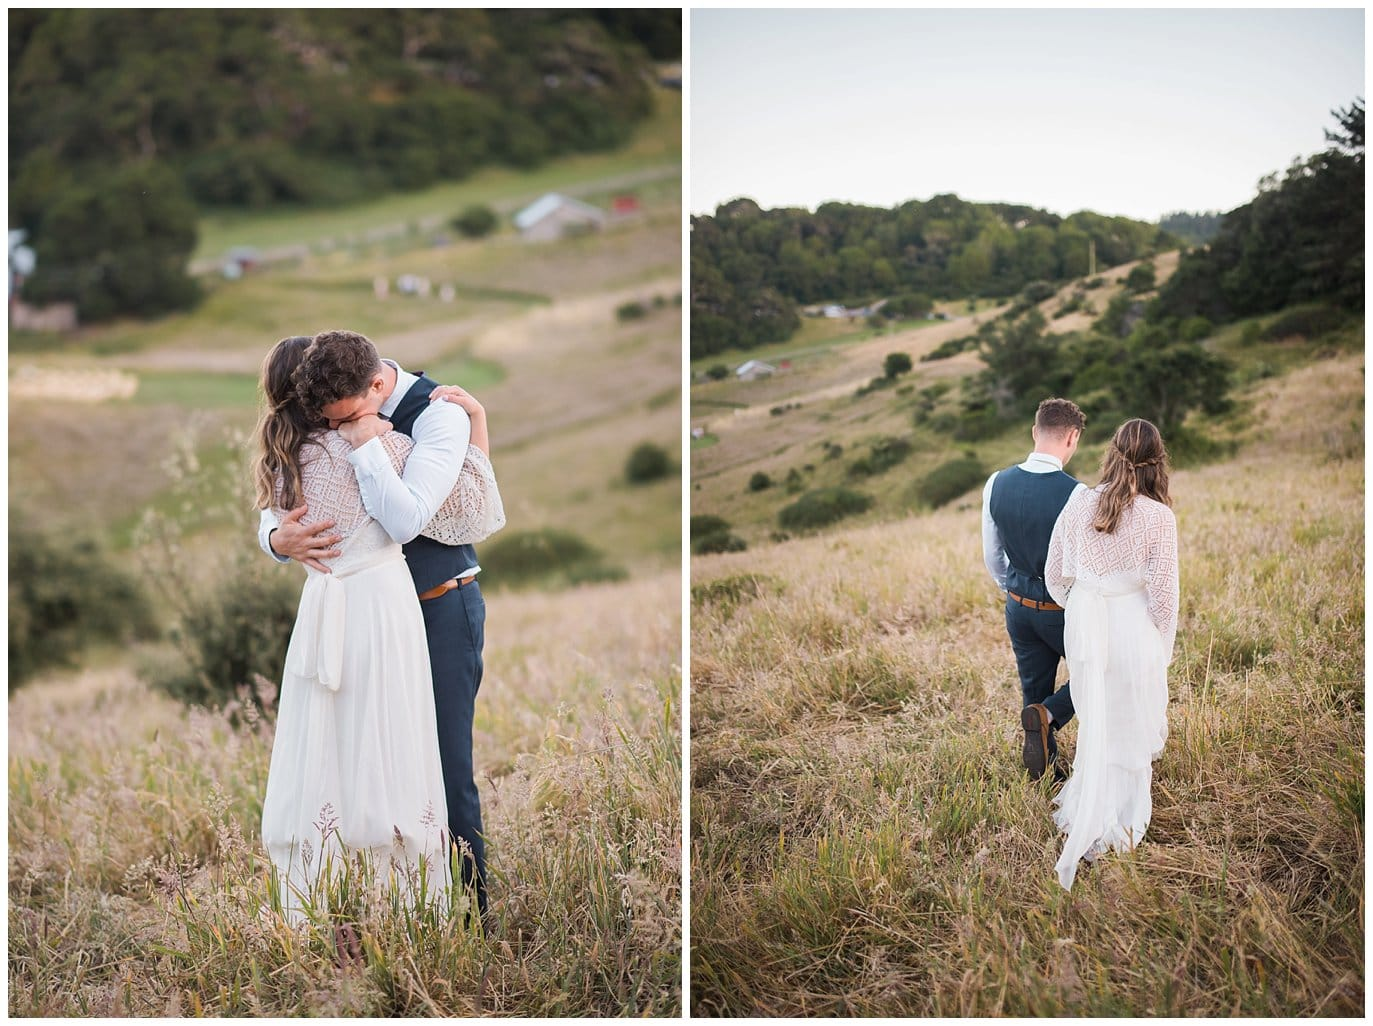 couple walks hand in hand in field at sunset during intimate California wedding at Mann Family Farm